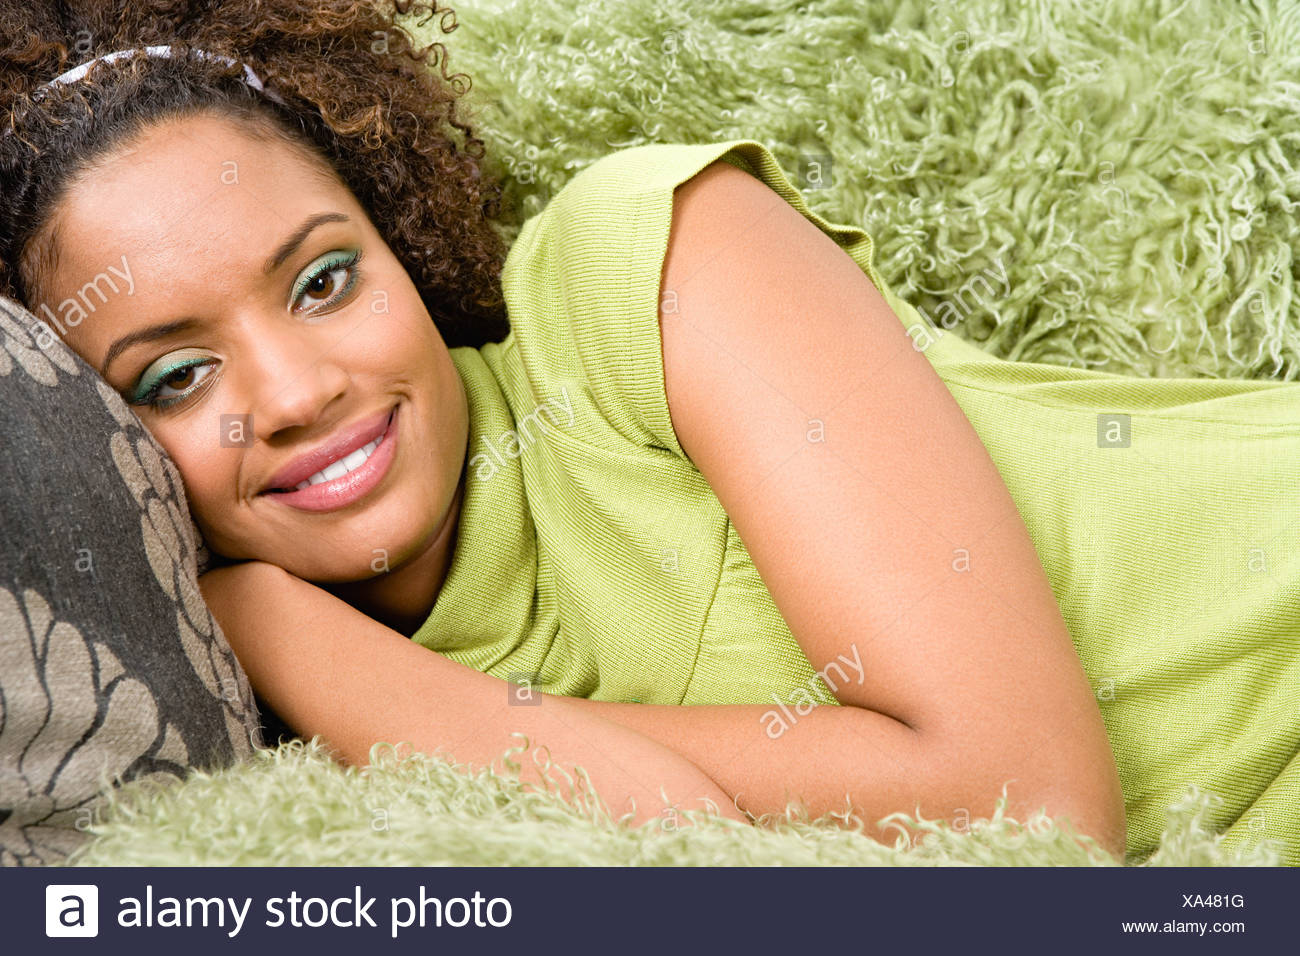 Woman reclining on arm chair Stock Photo